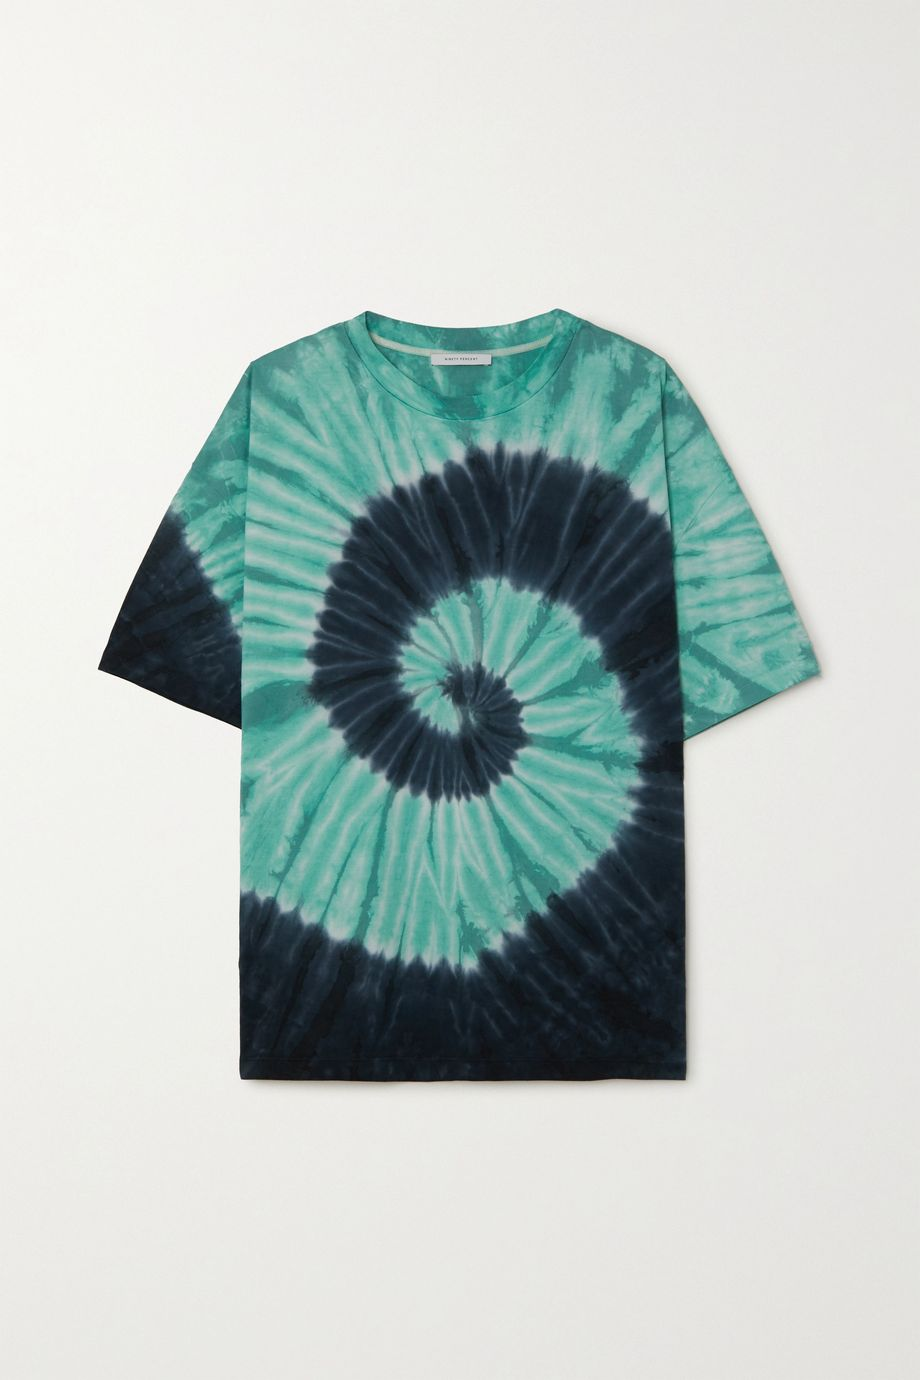 Ninety Percent + NET SUSTAIN tie-dyed organic cotton-jersey T-shirt